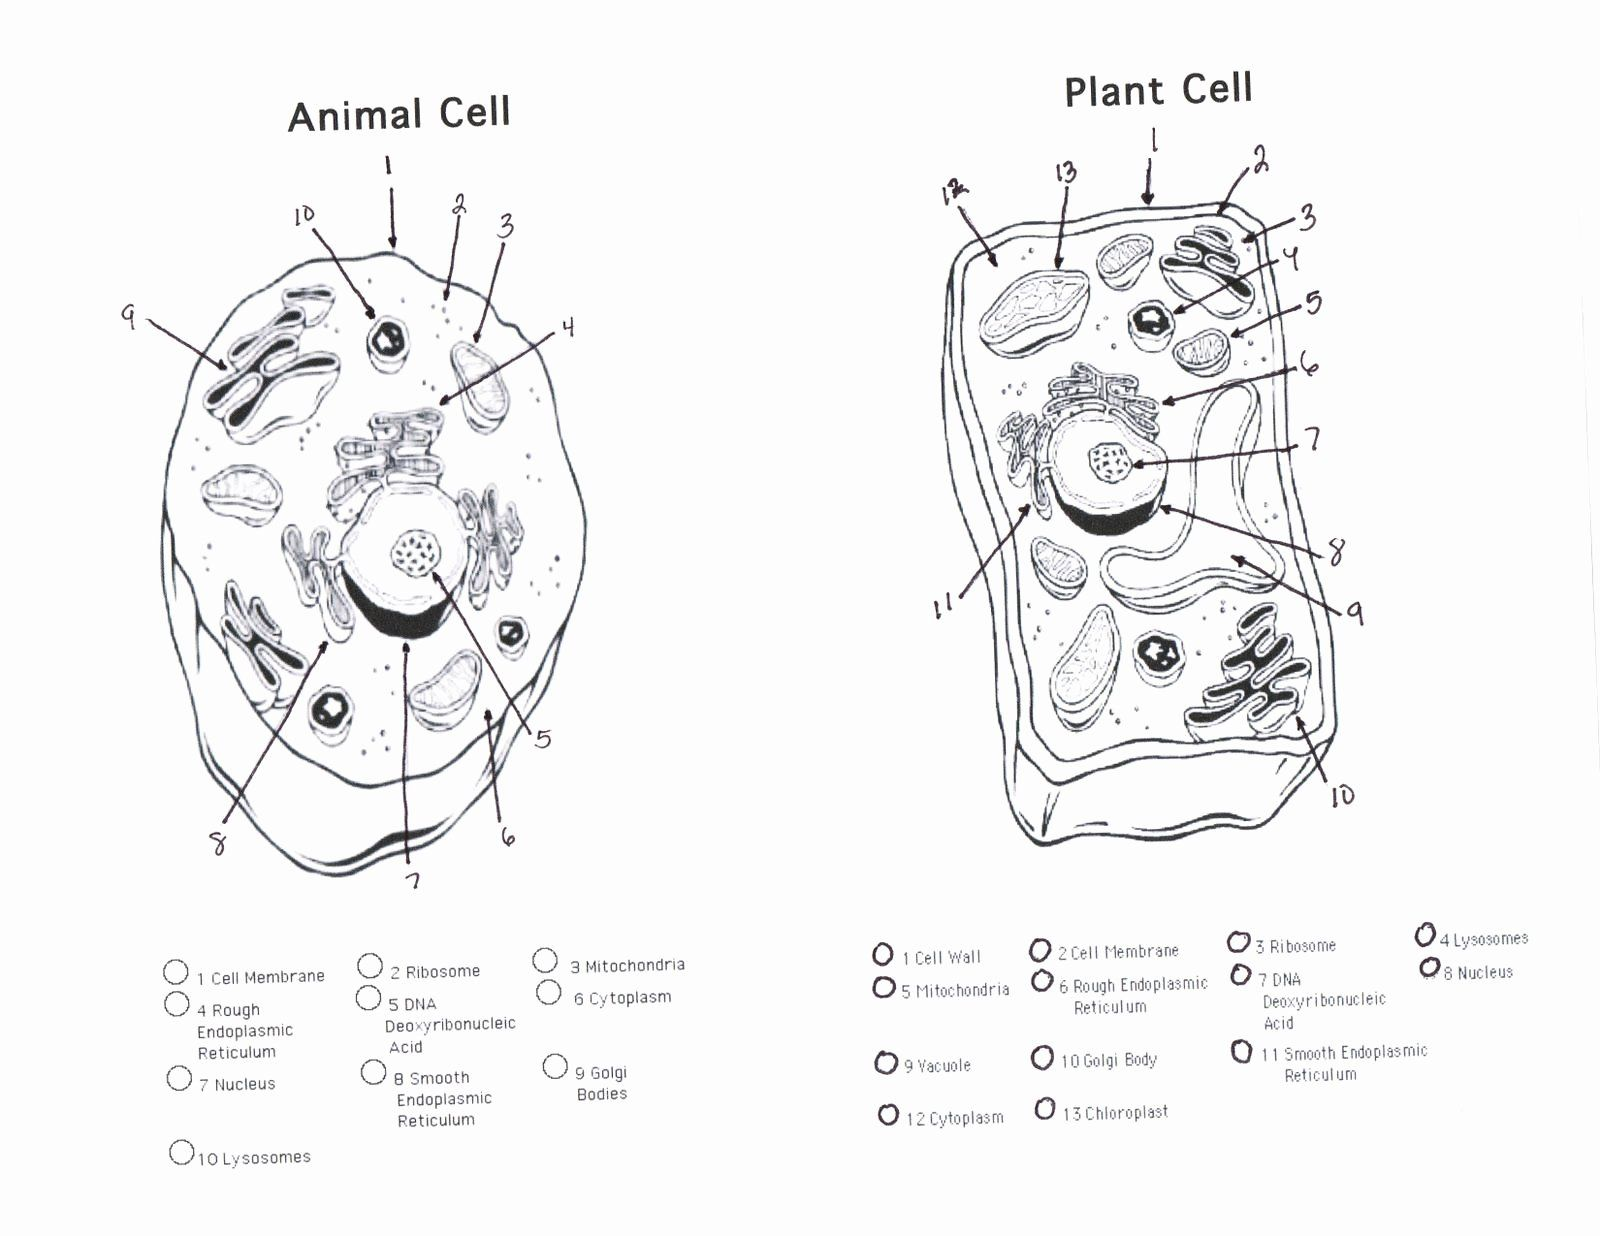 Animal And Plant Cells Worksheet Inspirational 1000 Images About Plant Animal Cells On Pinterest Chess In 2020 Animal Cells Worksheet Plant Cell Drawing Cell Diagram